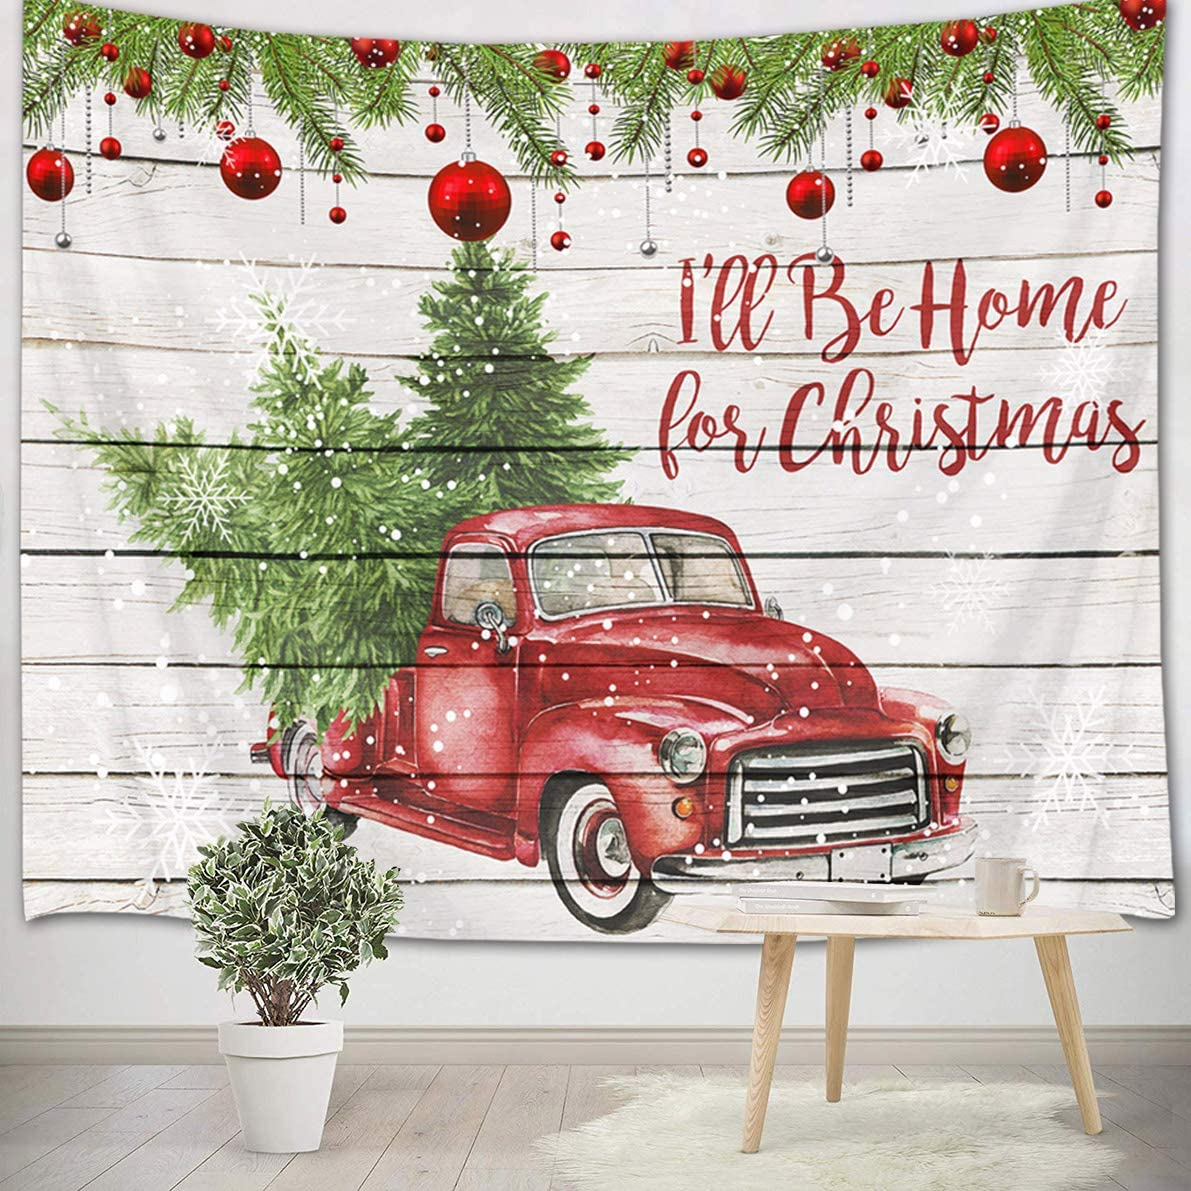 HVEST Christmas Tapestry Wall Hanging Red Truck with Christmas Trees Xmas Balls Wall Tapestry Retro Plank with Snowflake Tapestry Wall Backdrop for Bedroom Room Dorm Outdoor Decor, 60Wx40H inches